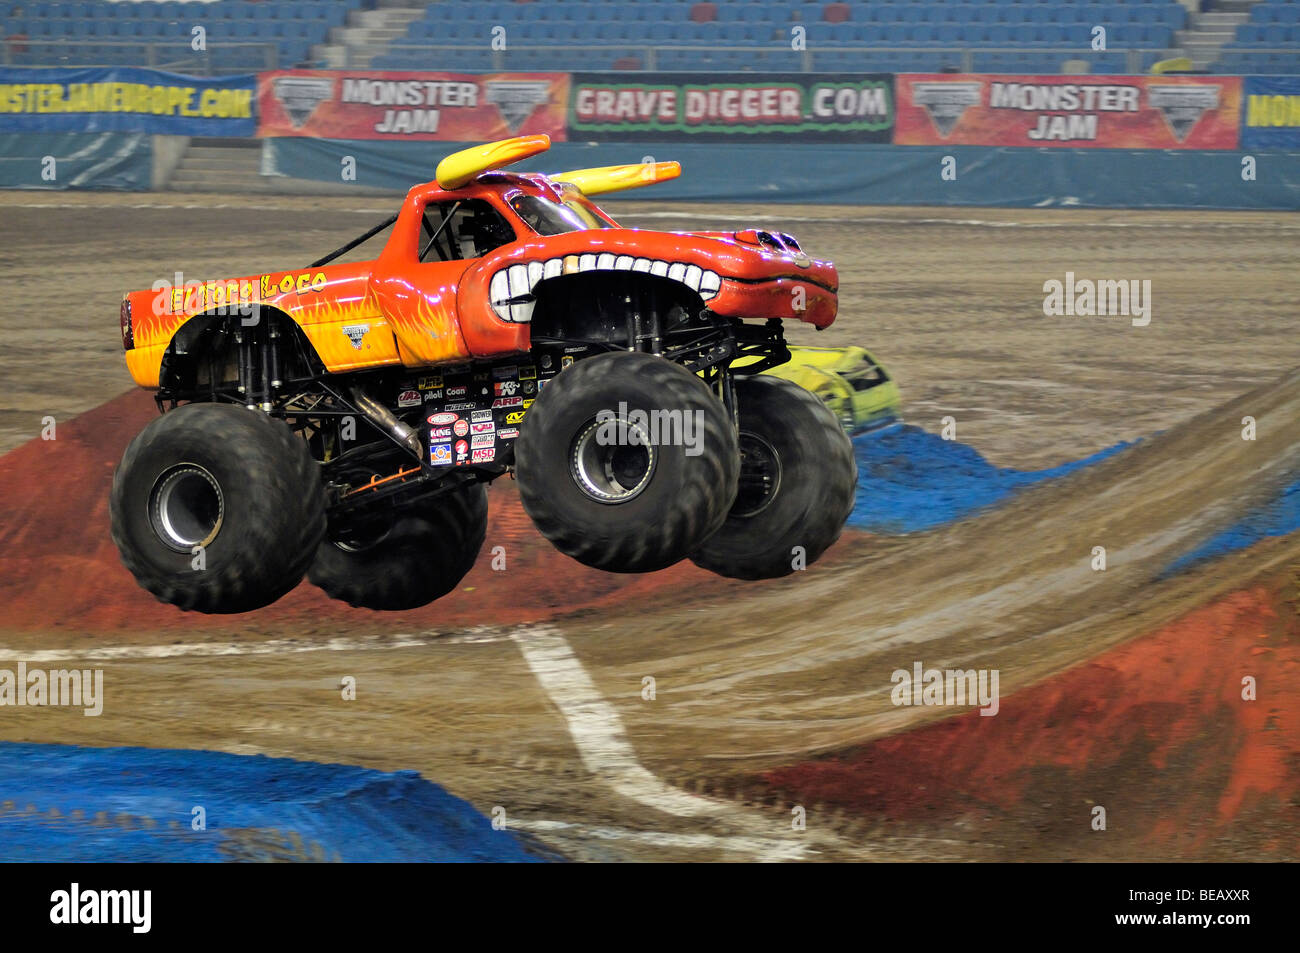 Monster jam el toro loco with damon bradshaw driver